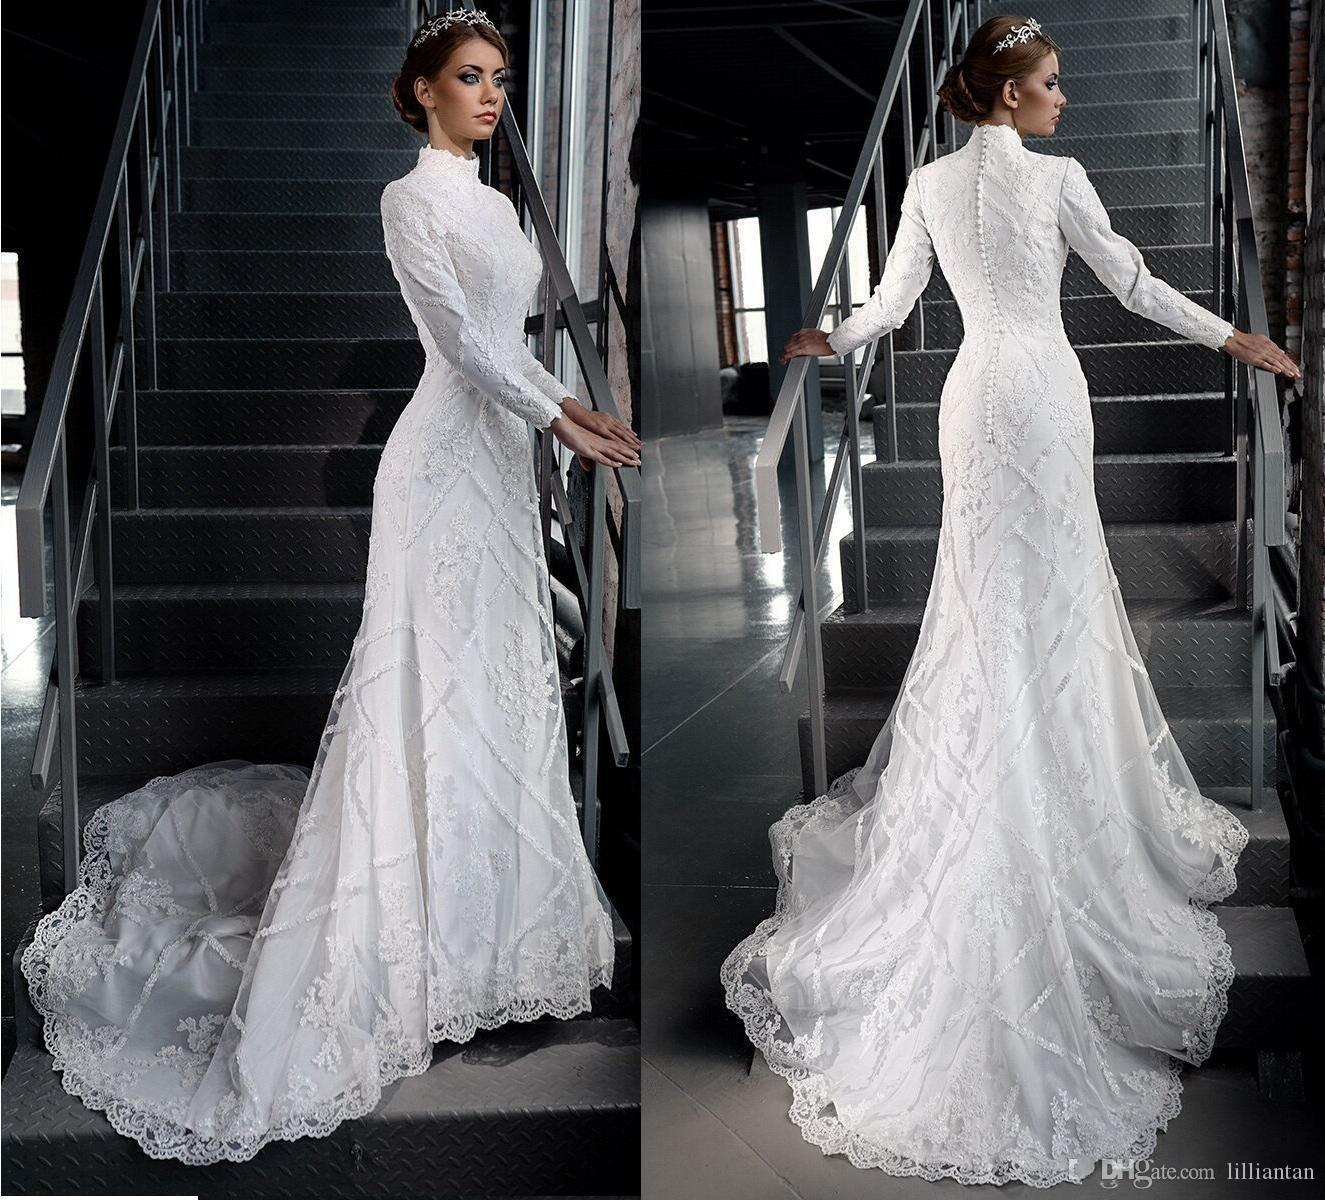 Discount Vintage Modest Lace Wedding Dresses Long Sleeve Tradional Catholic  Christian Wedding Gown Muslim Dubai Arabic Bridal Appliques Real Image  Wedding ... dac761402f6e